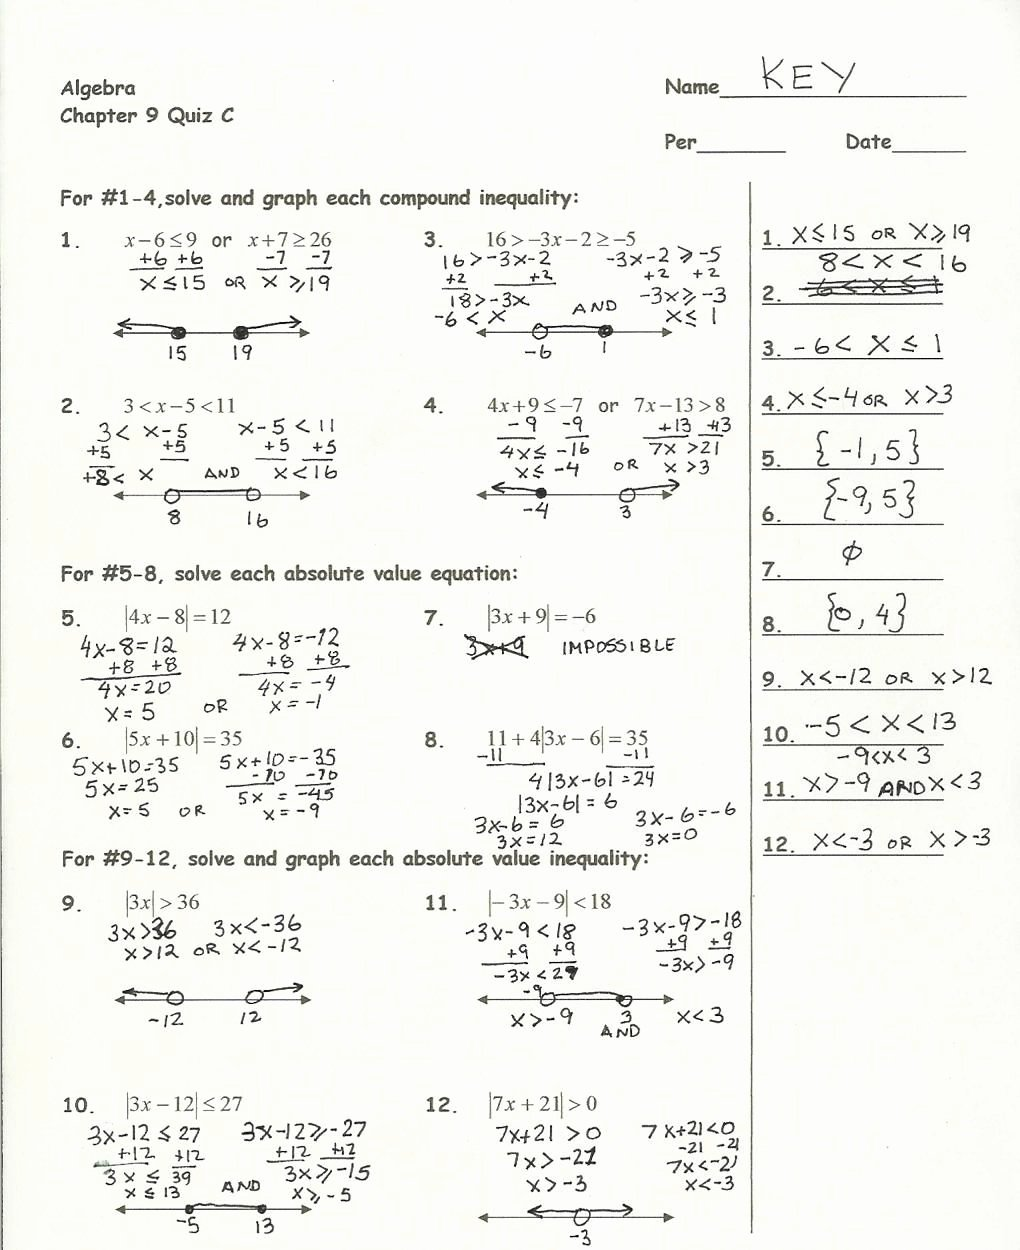 Graphing Quadratics Worksheet Answers Inspirational Graphing Parabolas Worksheet Algebra 1